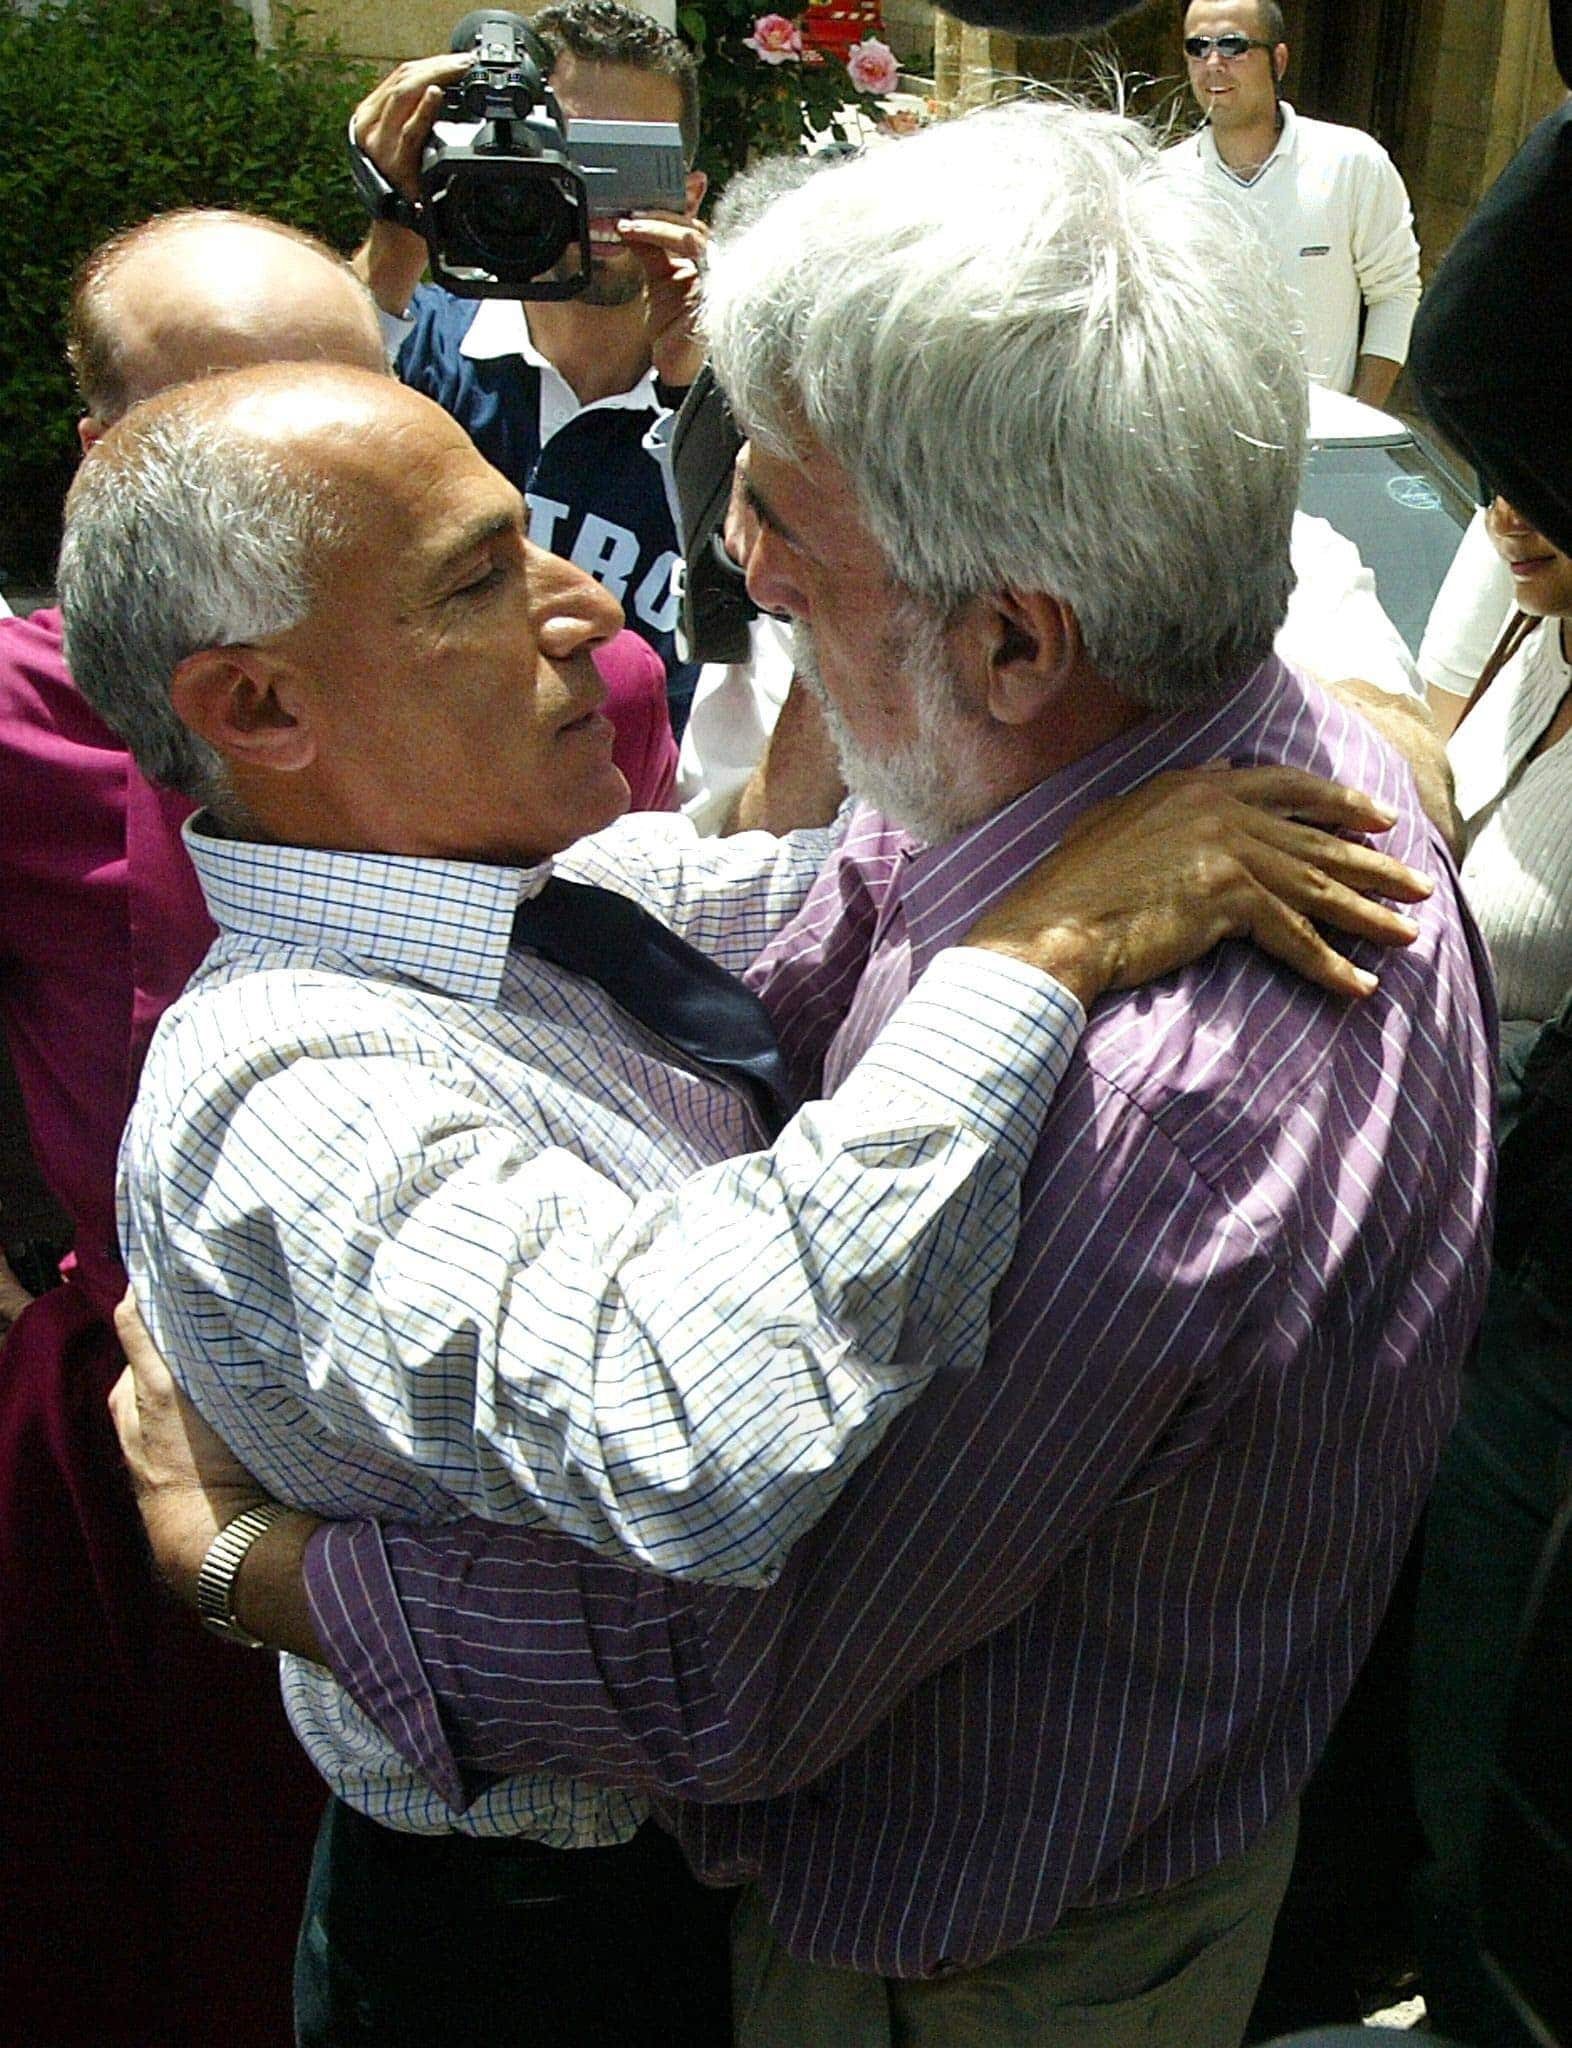 Hounam re-unites with Vanunu on his release from prison in 2004